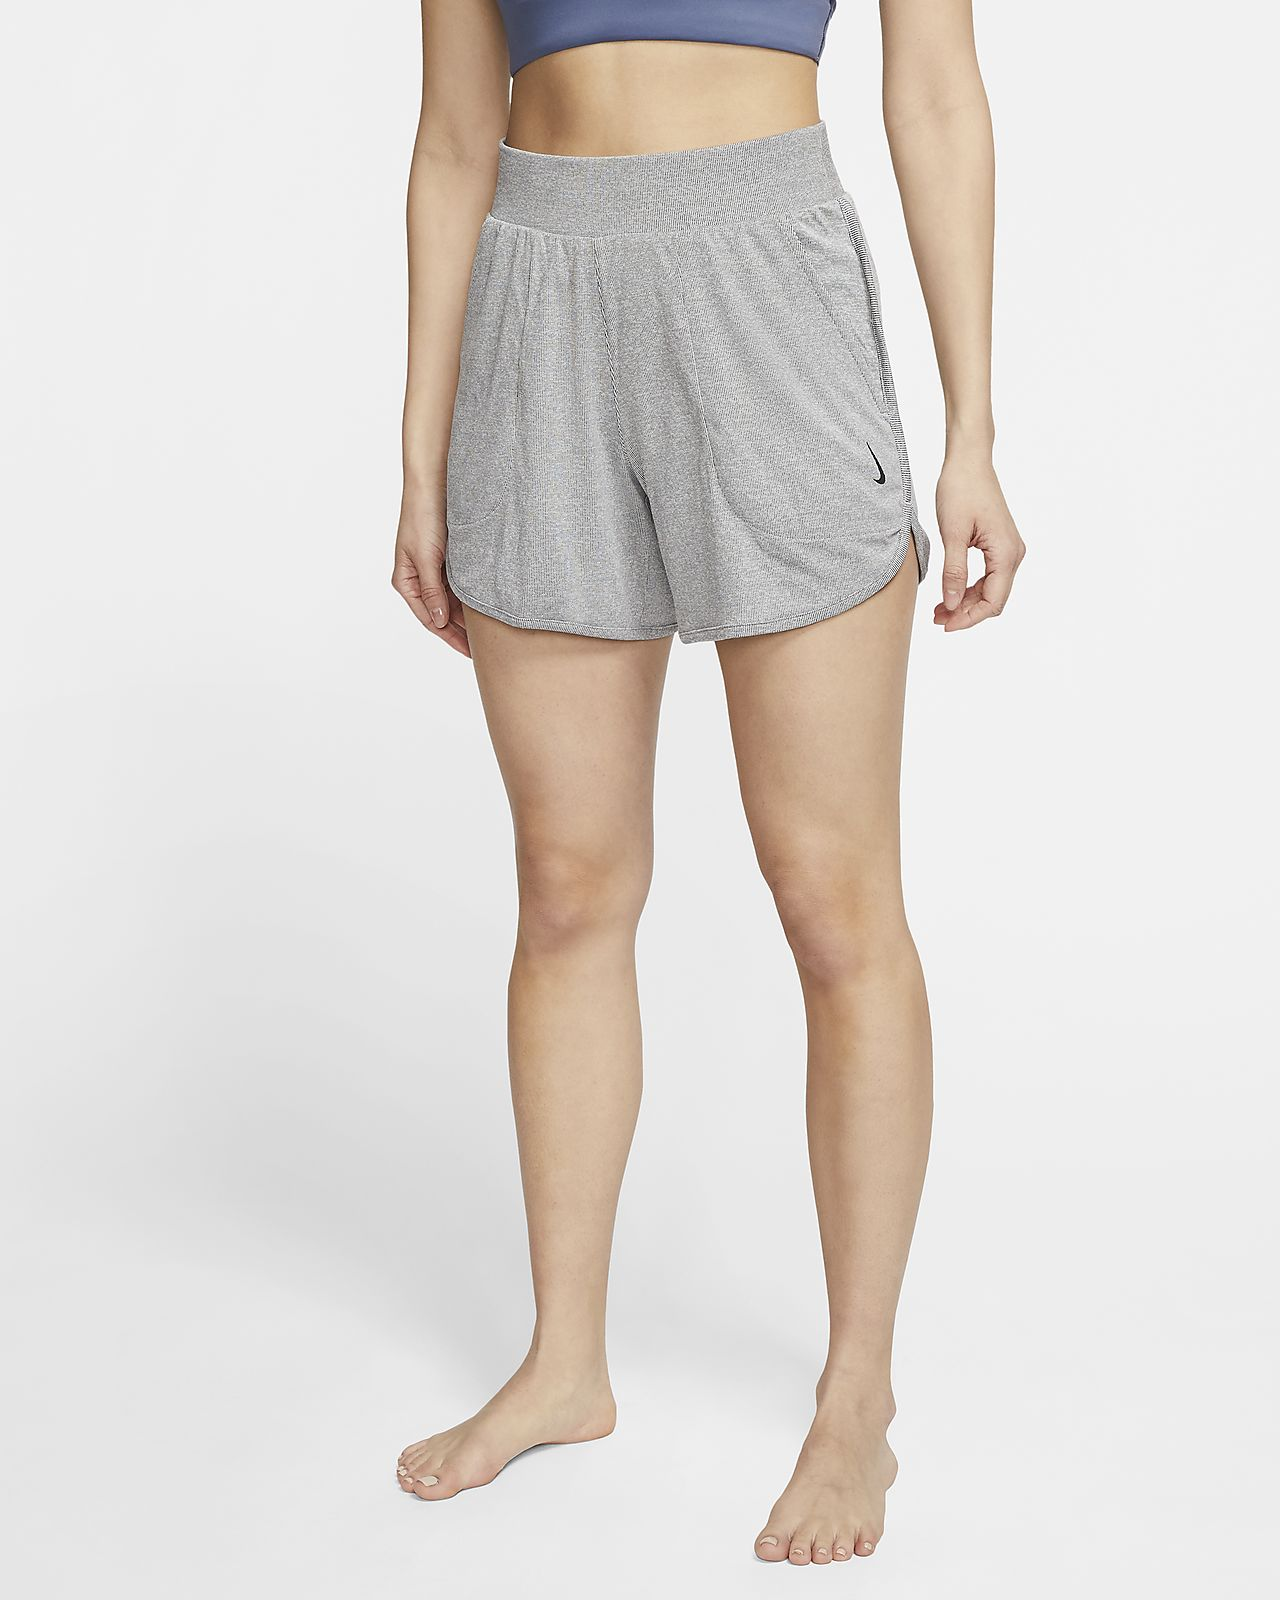 Nike Yoga Women's Ribbed Shorts